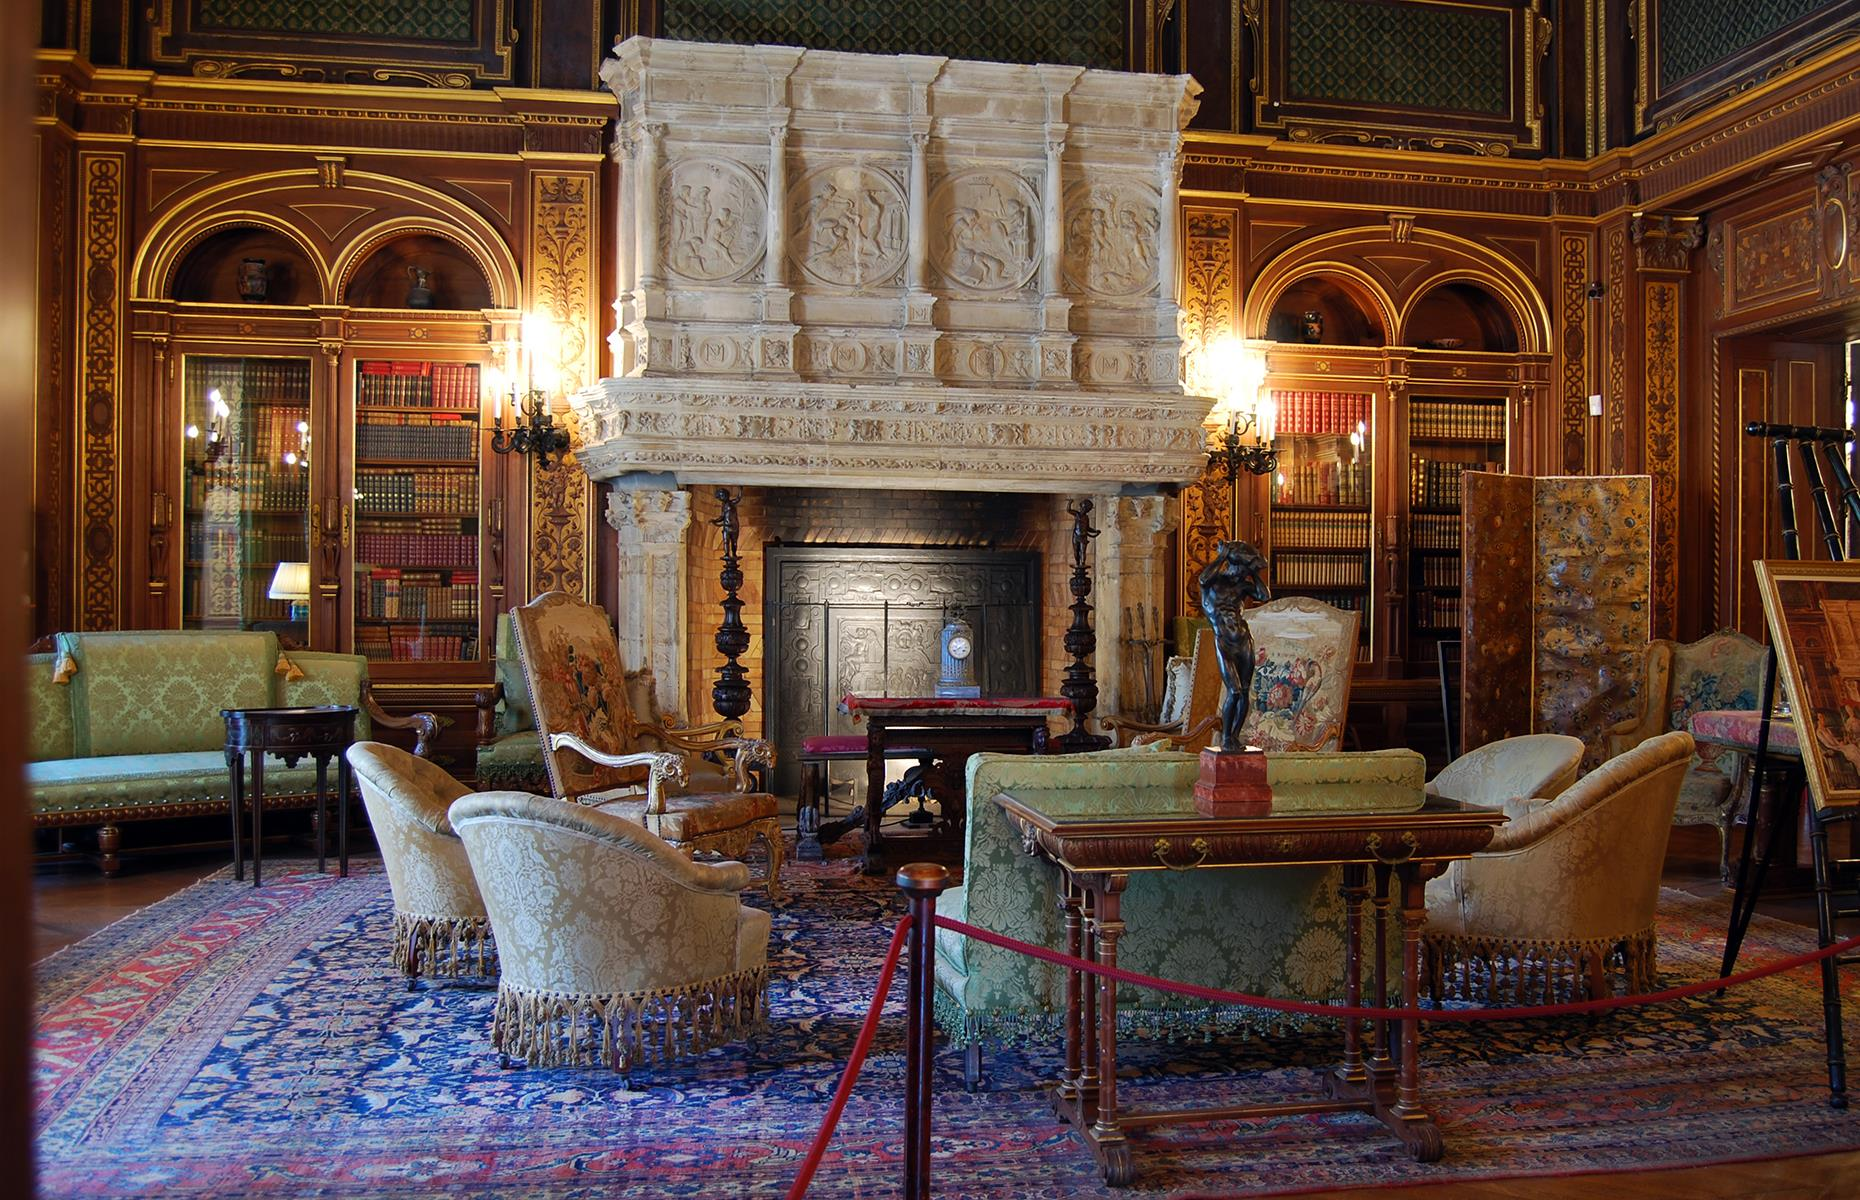 Slide 37 of 53: The mansion features 70 rooms with a total floor space of 62,484 square feet (5,804sqm) arranged over five floors. The dazzling Morning Room, for instance, was built by artisans in France, shipped to the US and assembled on-site, and is adorned with wall panels made from pure platinum.